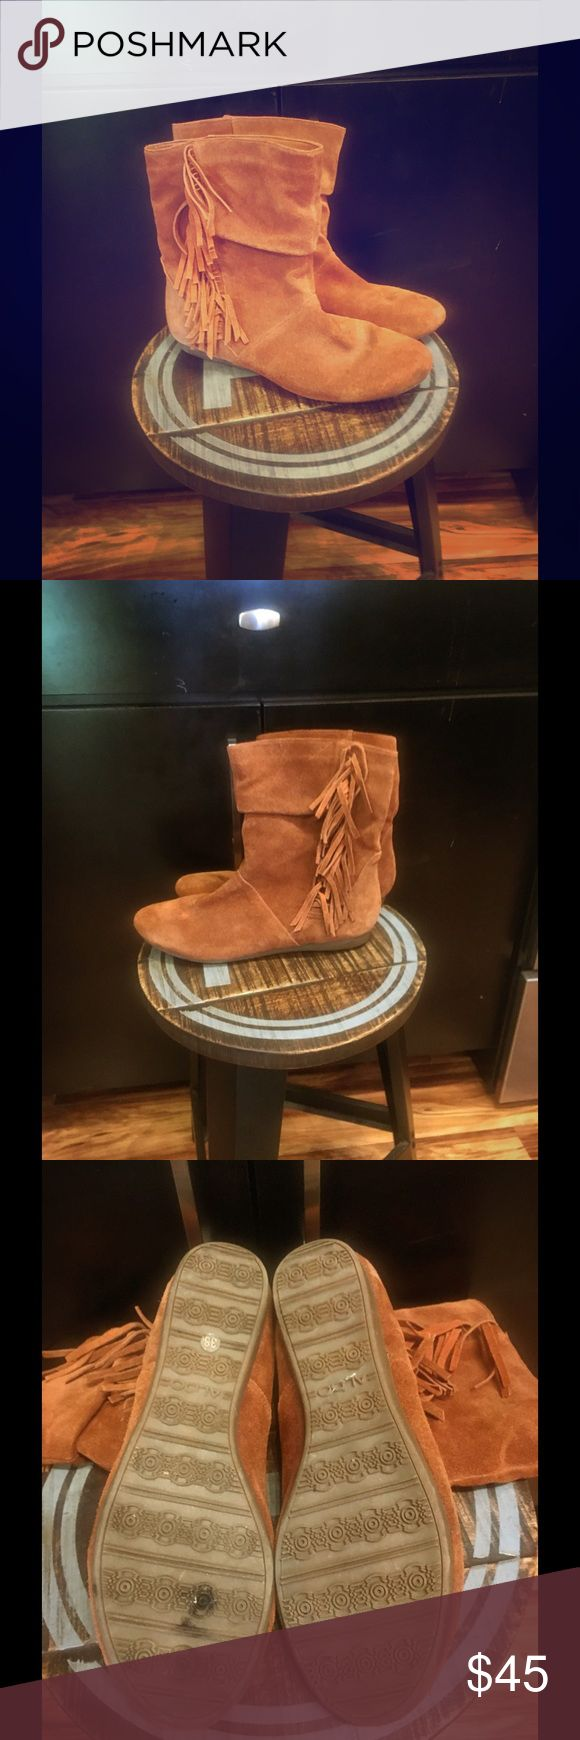 Aldo Moccasin Ankle Boots with Fringe Brown leather women's Aldo moccasin ankle boots size 7.5 (38 Euro). They are used without box but have only been worn a few times and are in great shape! Aldo Shoes Moccasins